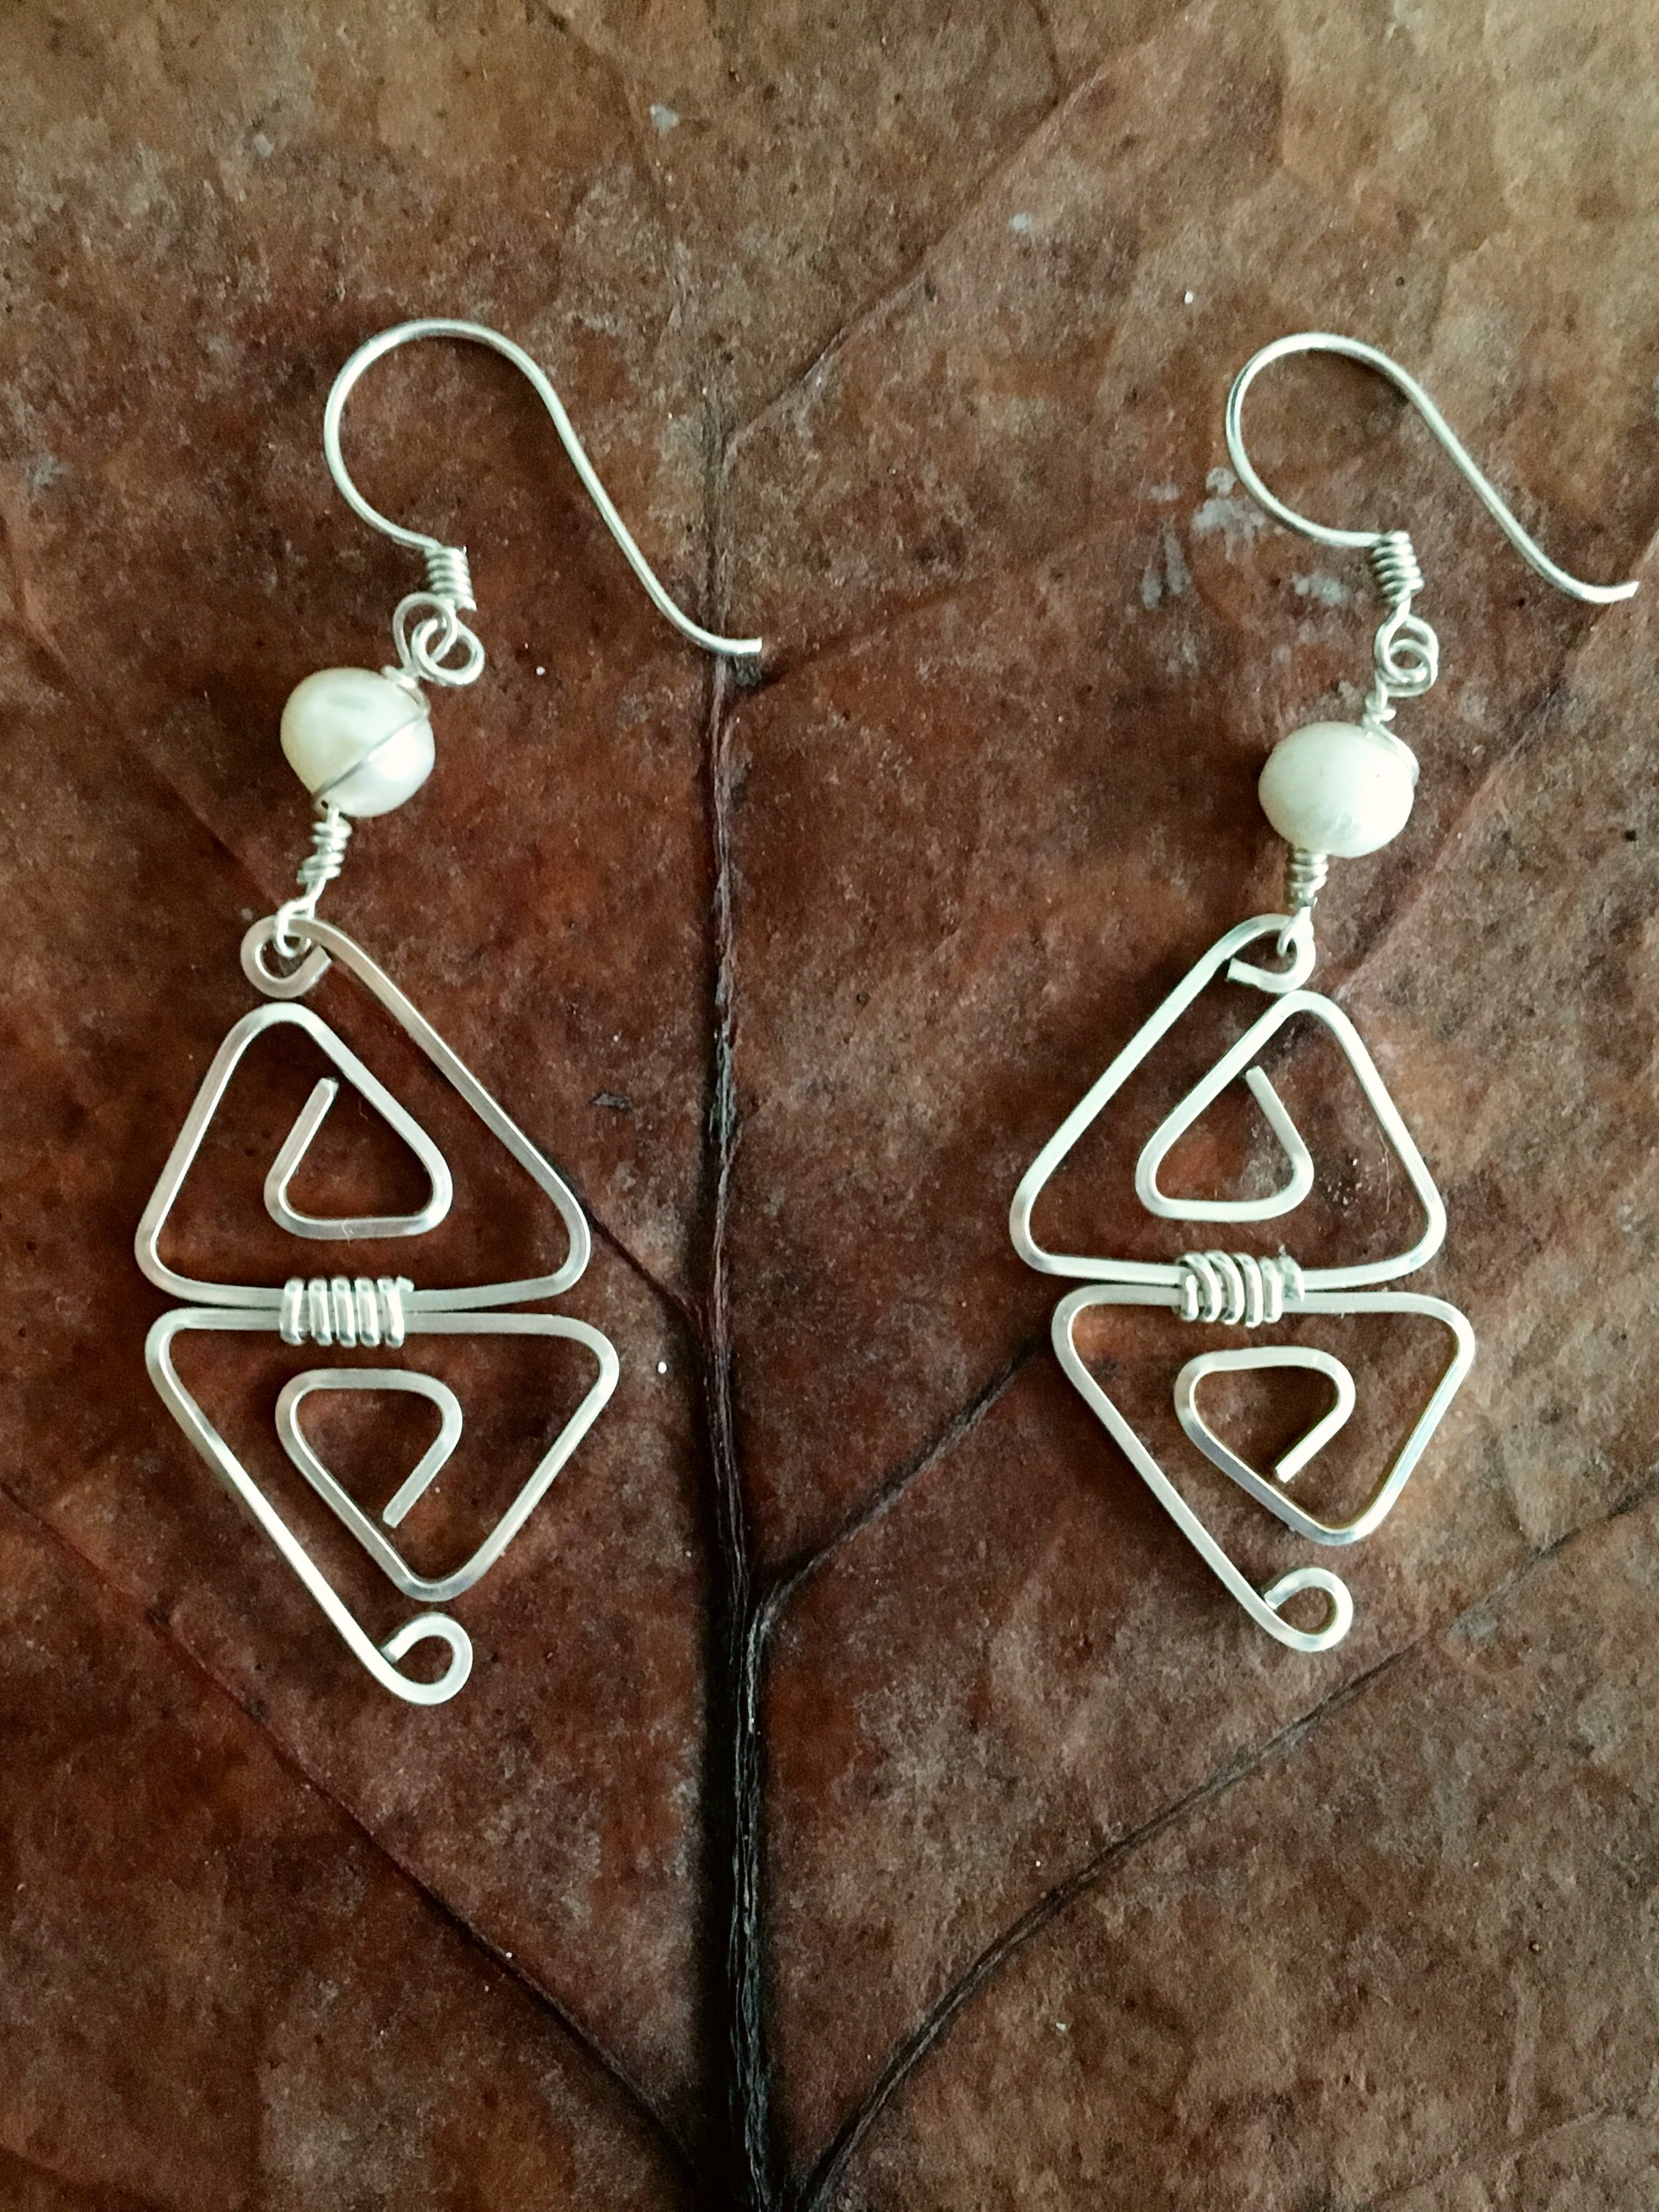 Candid Claire Earrings - Double Triangle - Silver Plated